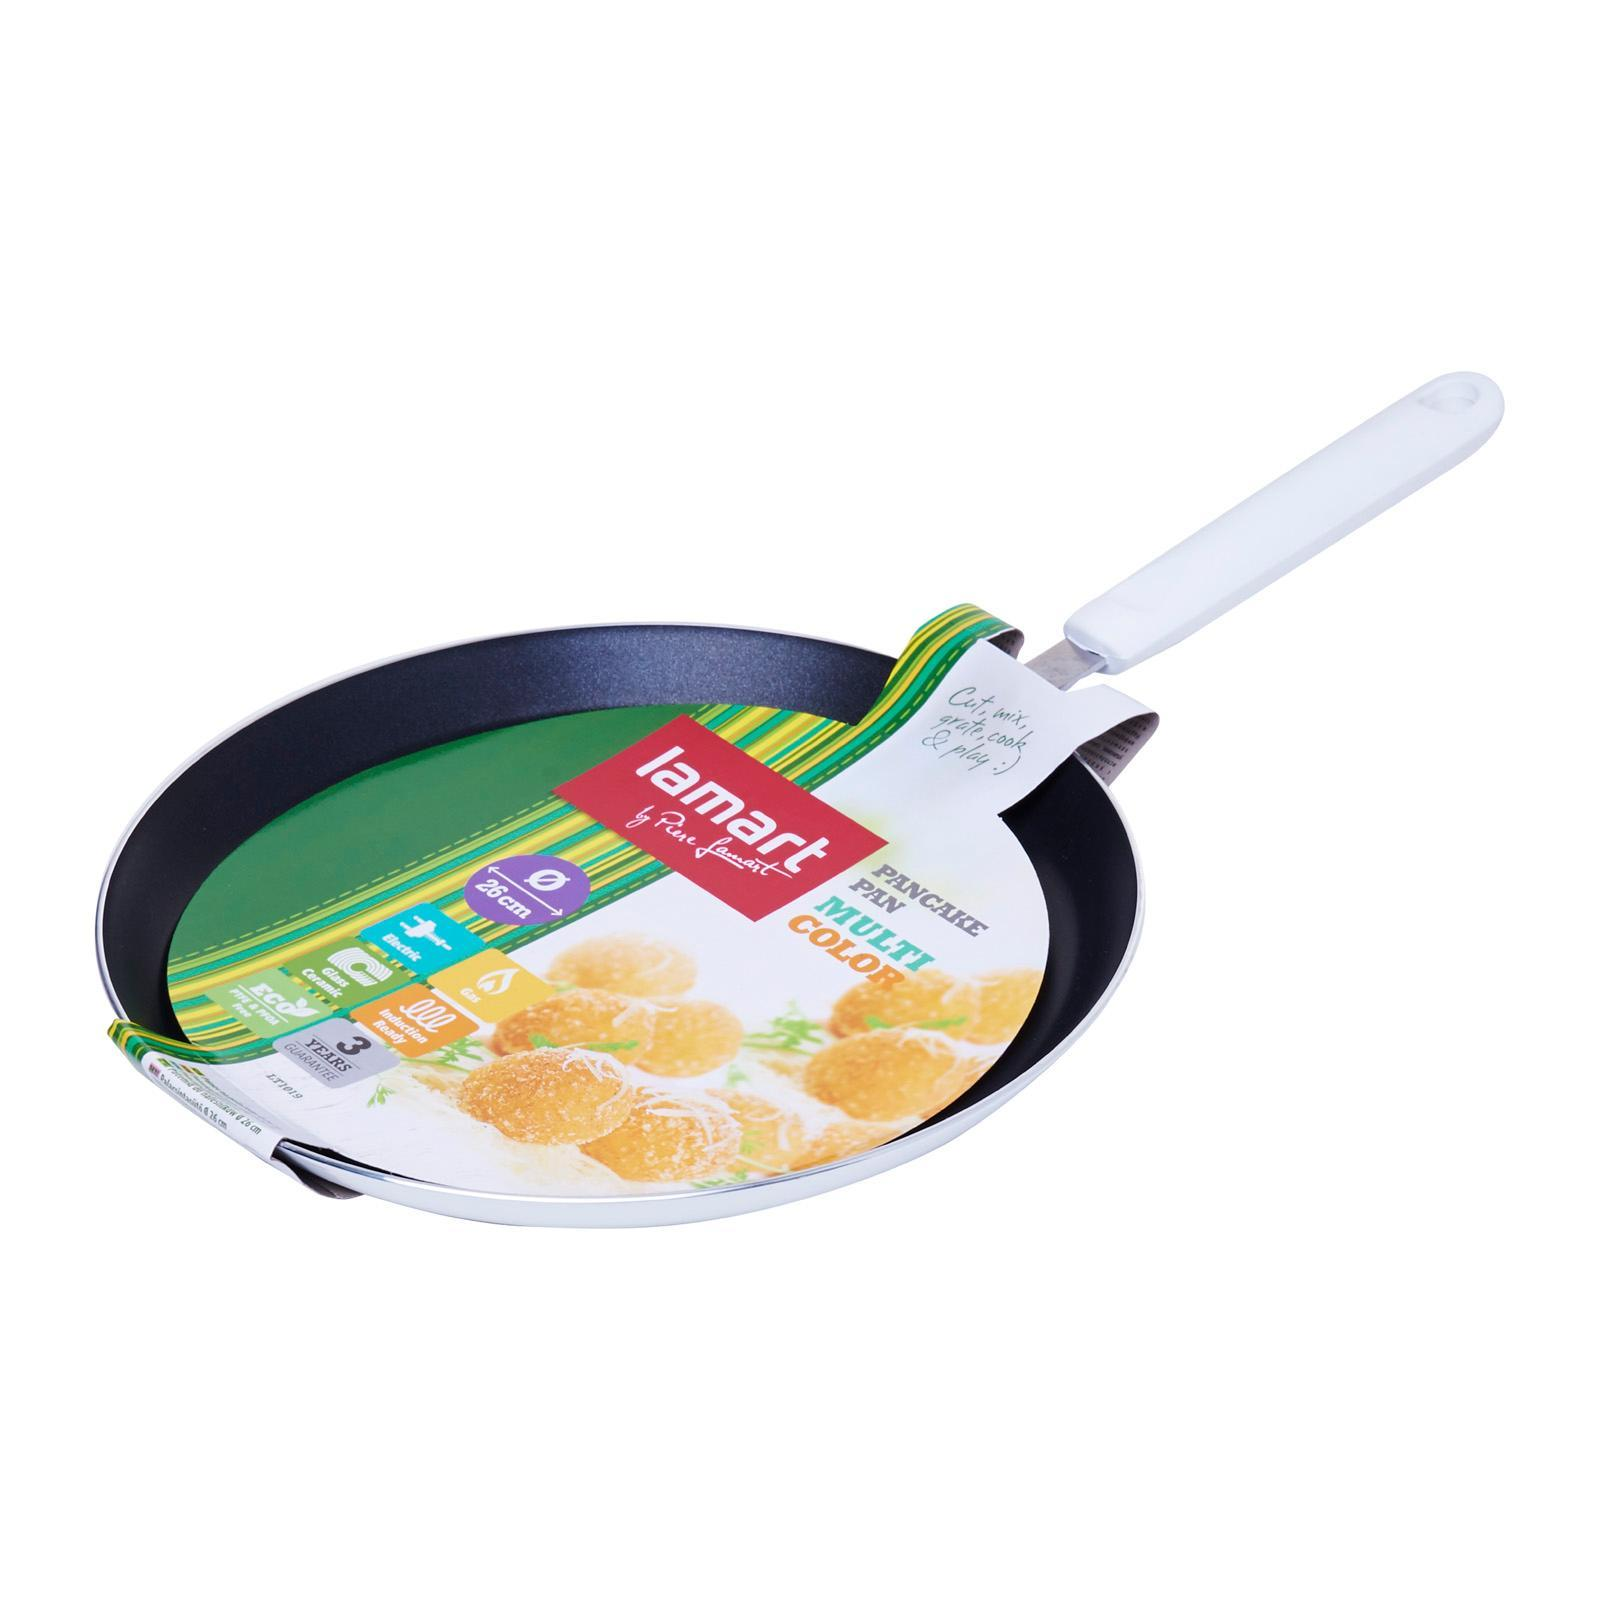 Lamart Induction Ready Non-Stick Crepe Pan 26X2Cm - White